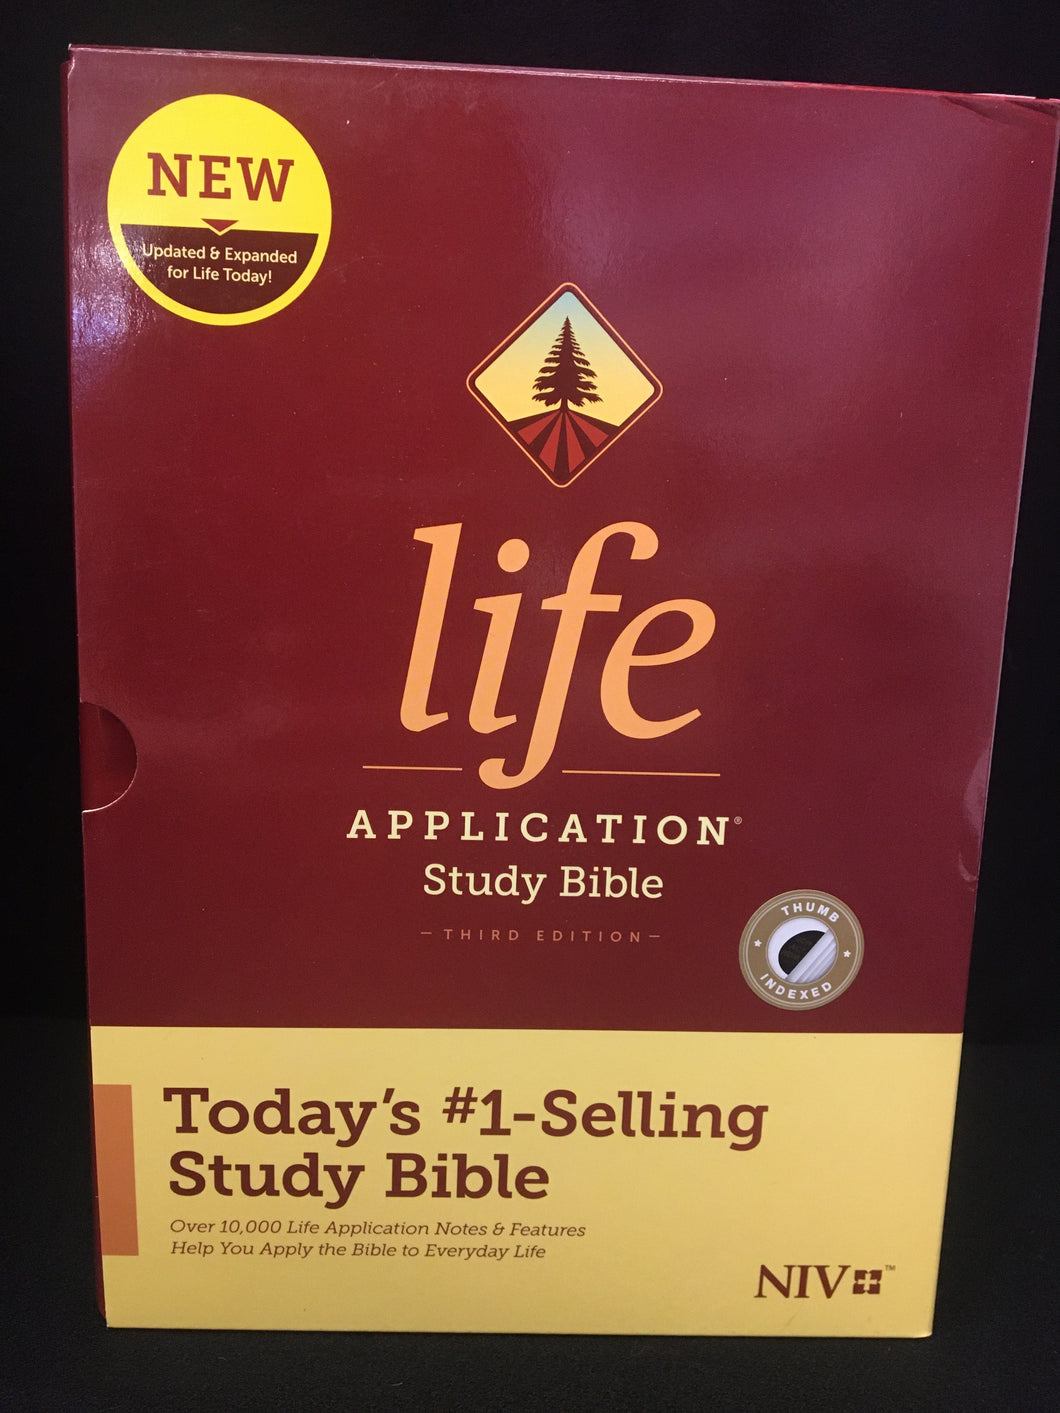 NIV Life Application Study Bible (Third Editions)